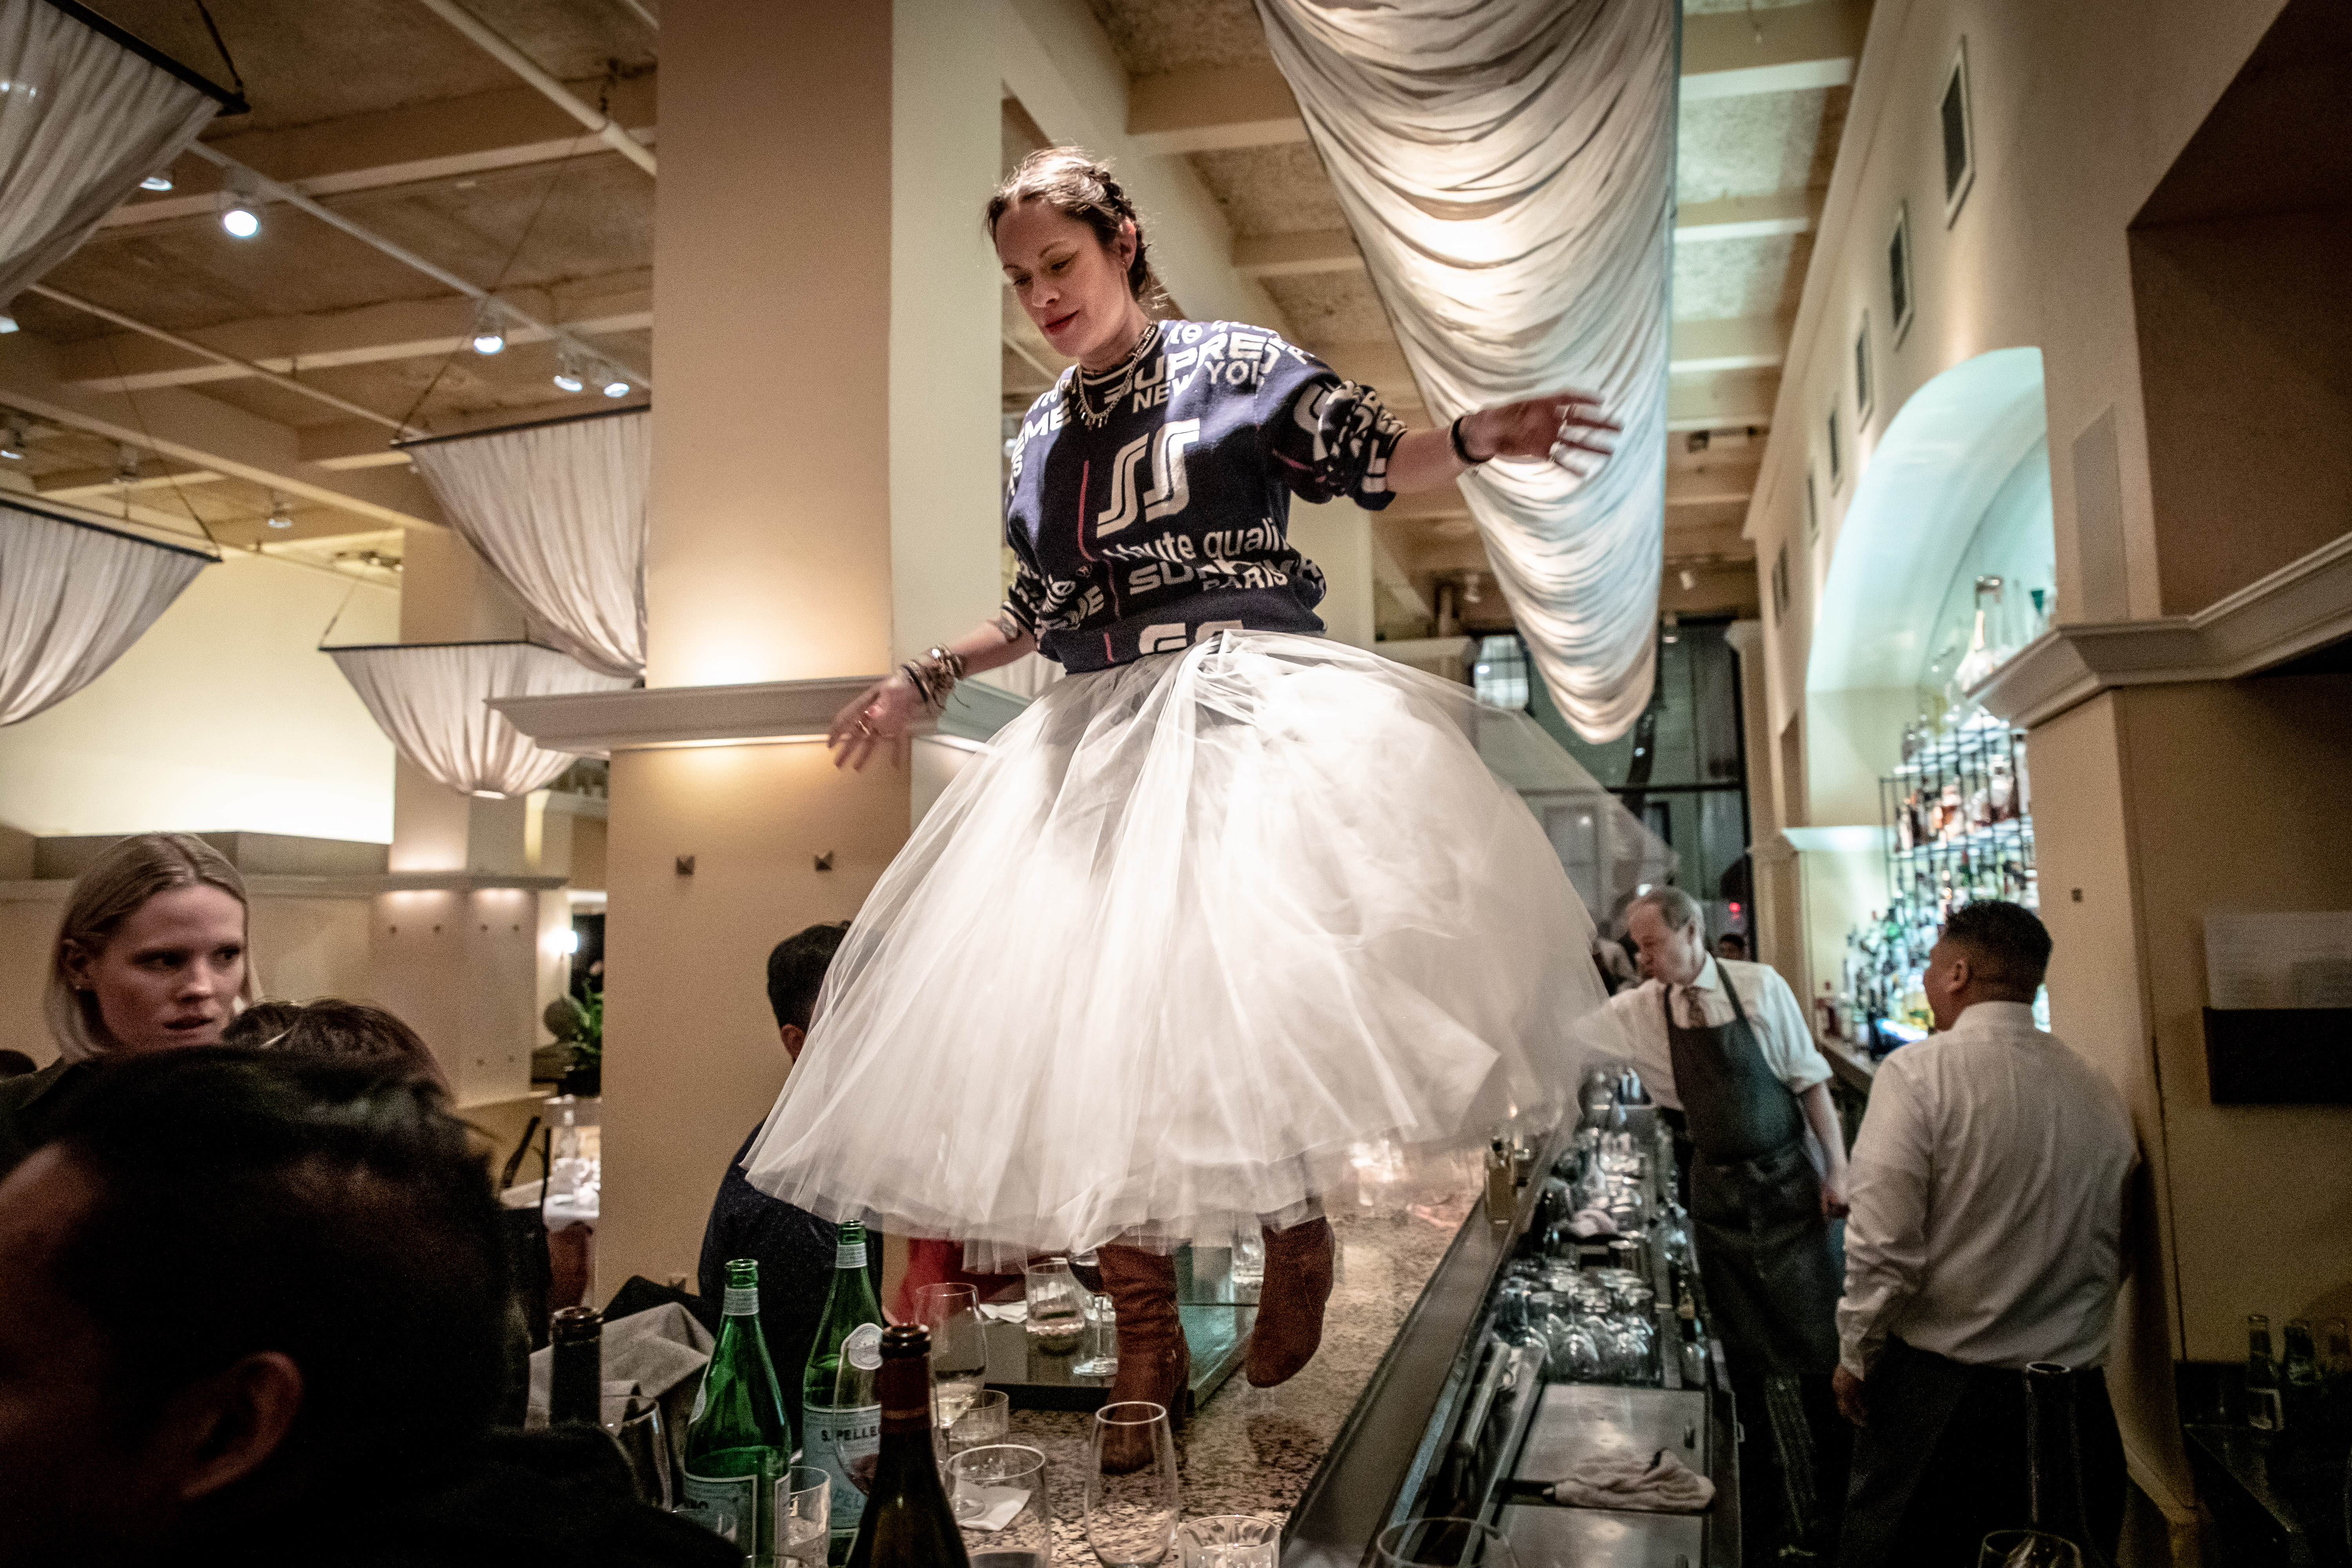 Regular customer Bianca Jebbia, wearing a giant white tutu, stands on top of the bar at Gotham